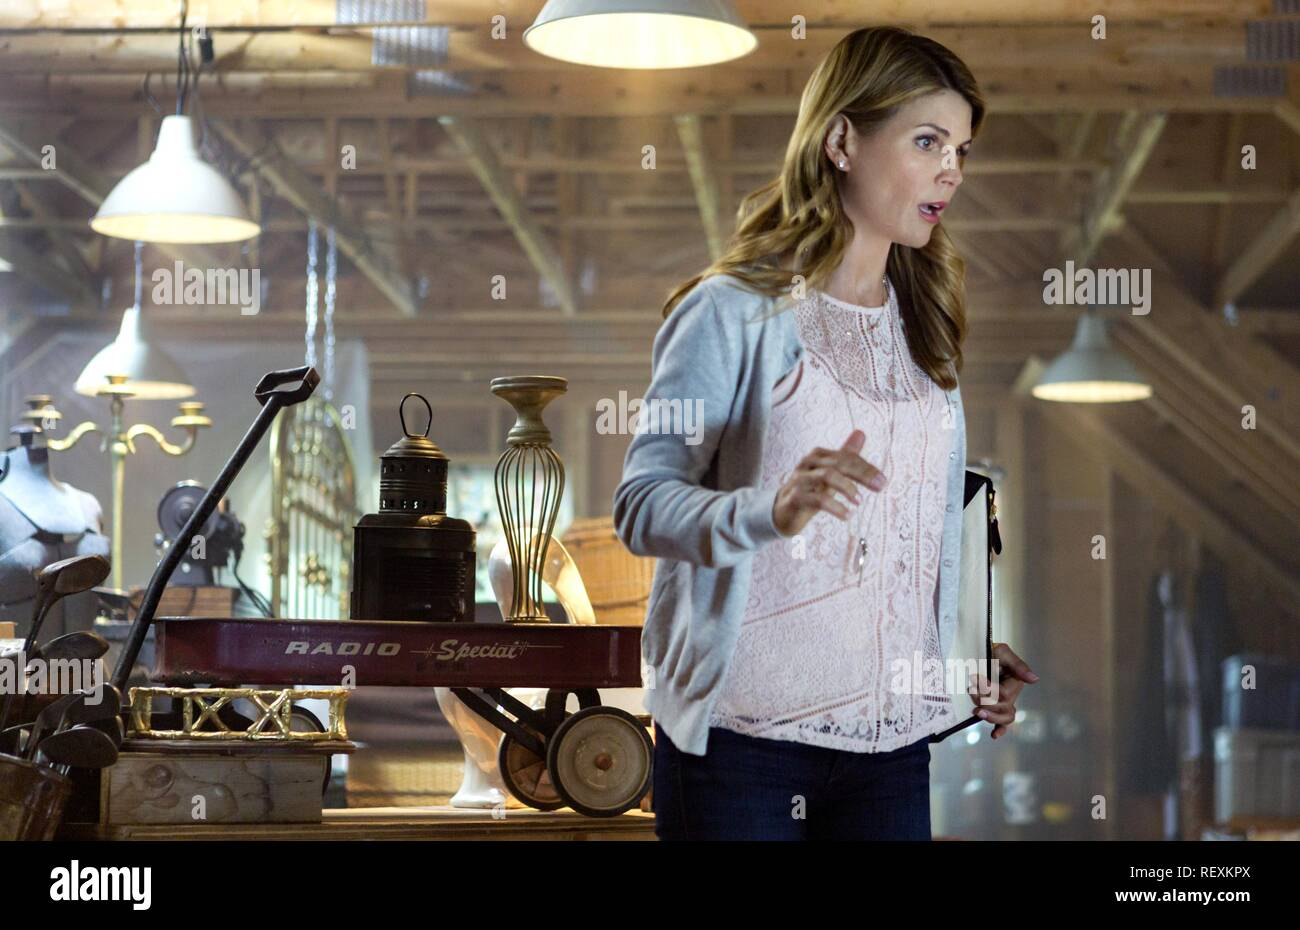 Garage Sale Mystery The Beach lori loughlin stock photos & lori loughlin stock images - alamy